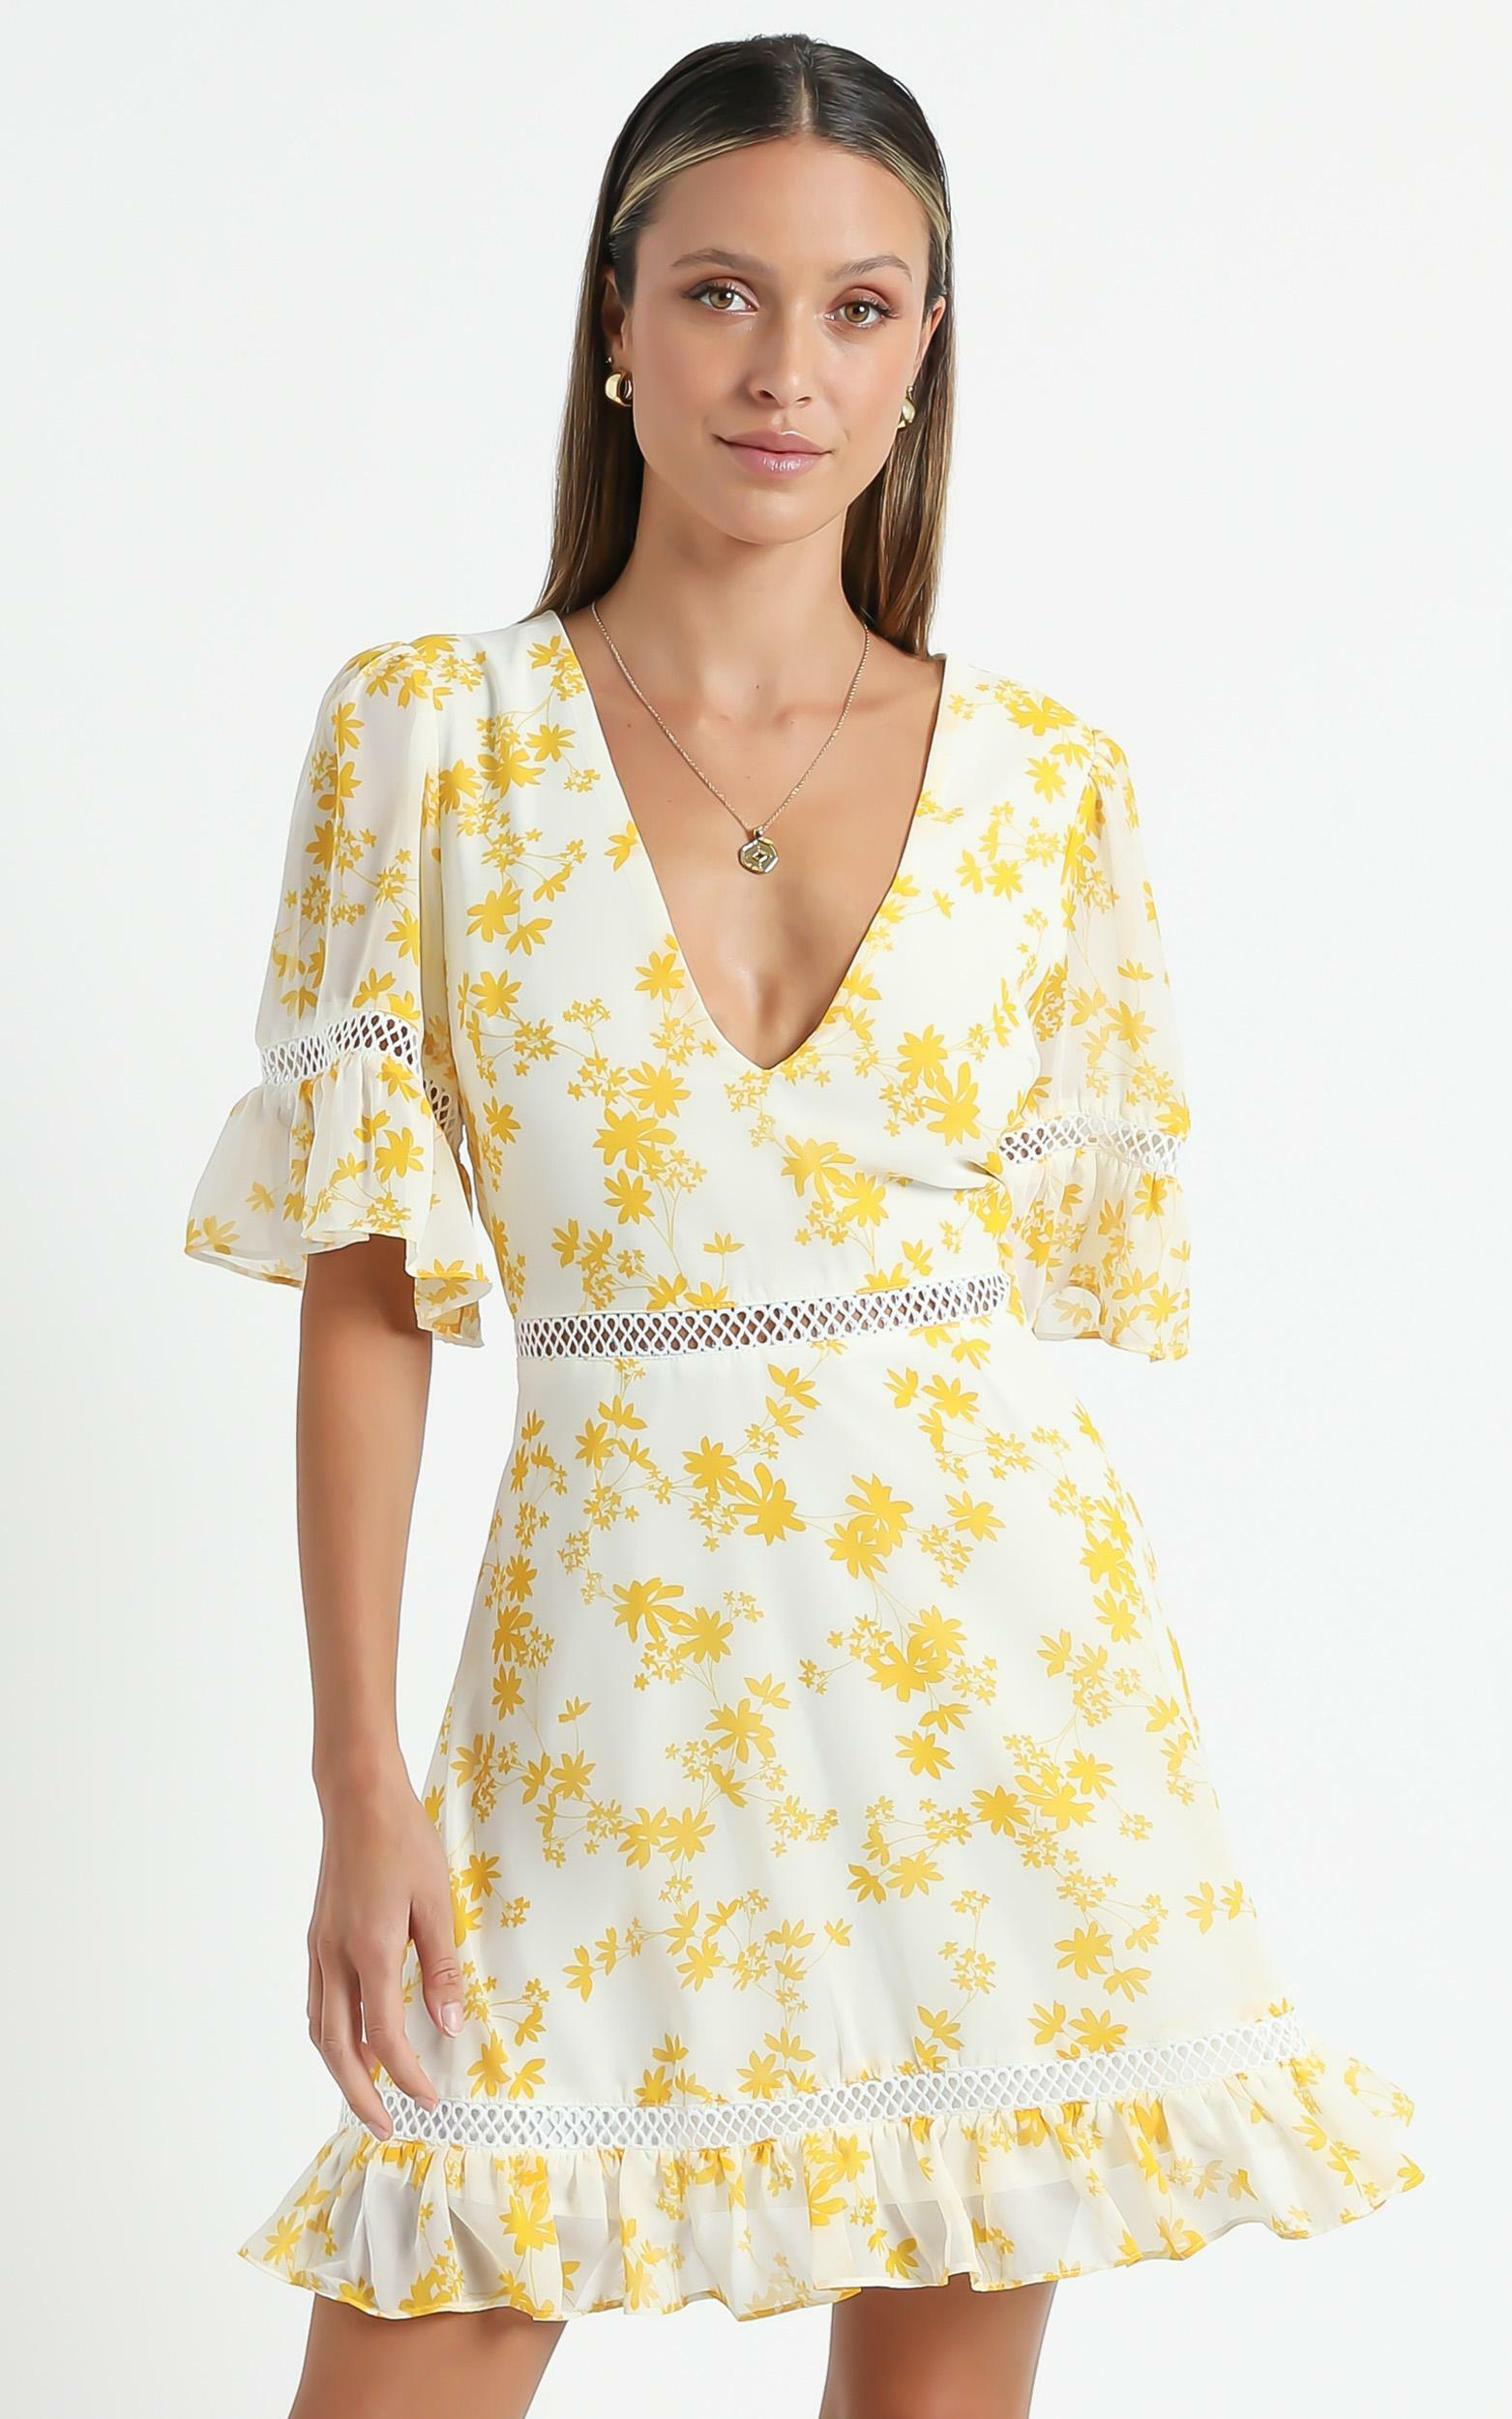 My Darkest Night Dress in Yellow Floral - 4 (XXS), Yellow, hi-res image number null